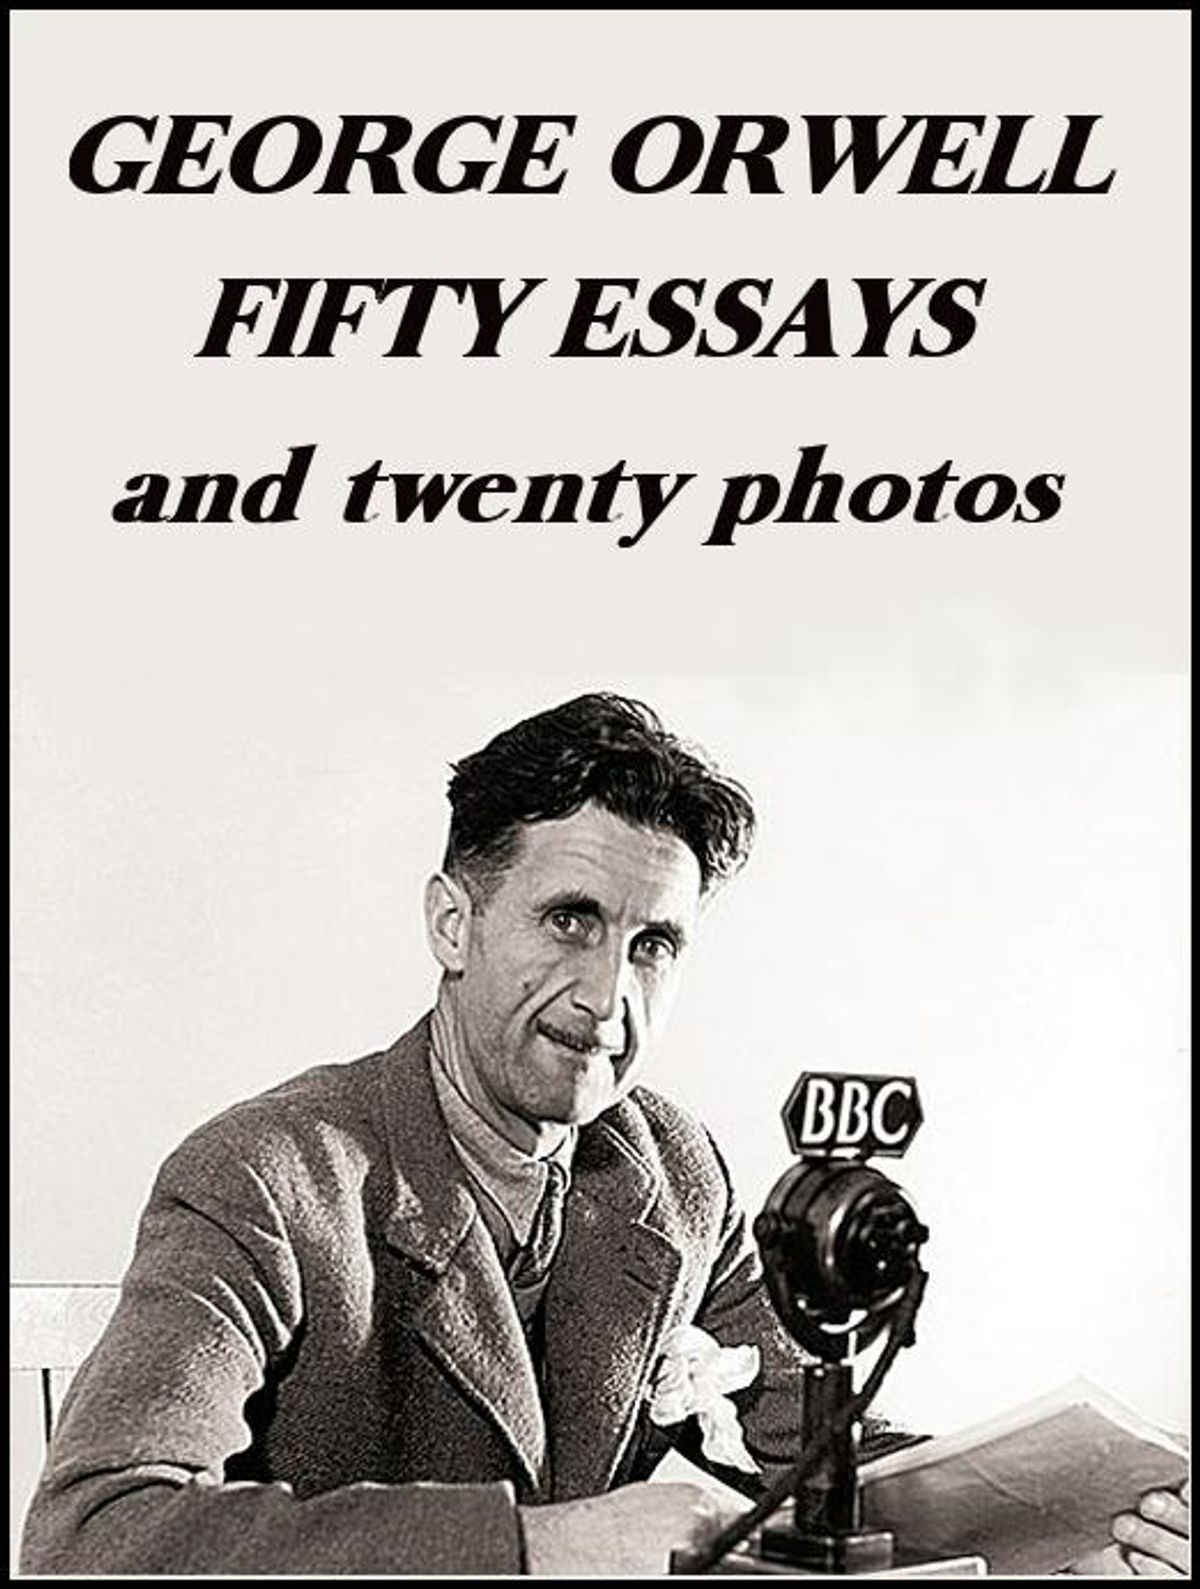 010 Essay Example George Orwell Fifty Frightening Essays 1984 Summary Collected Pdf On Writing Full